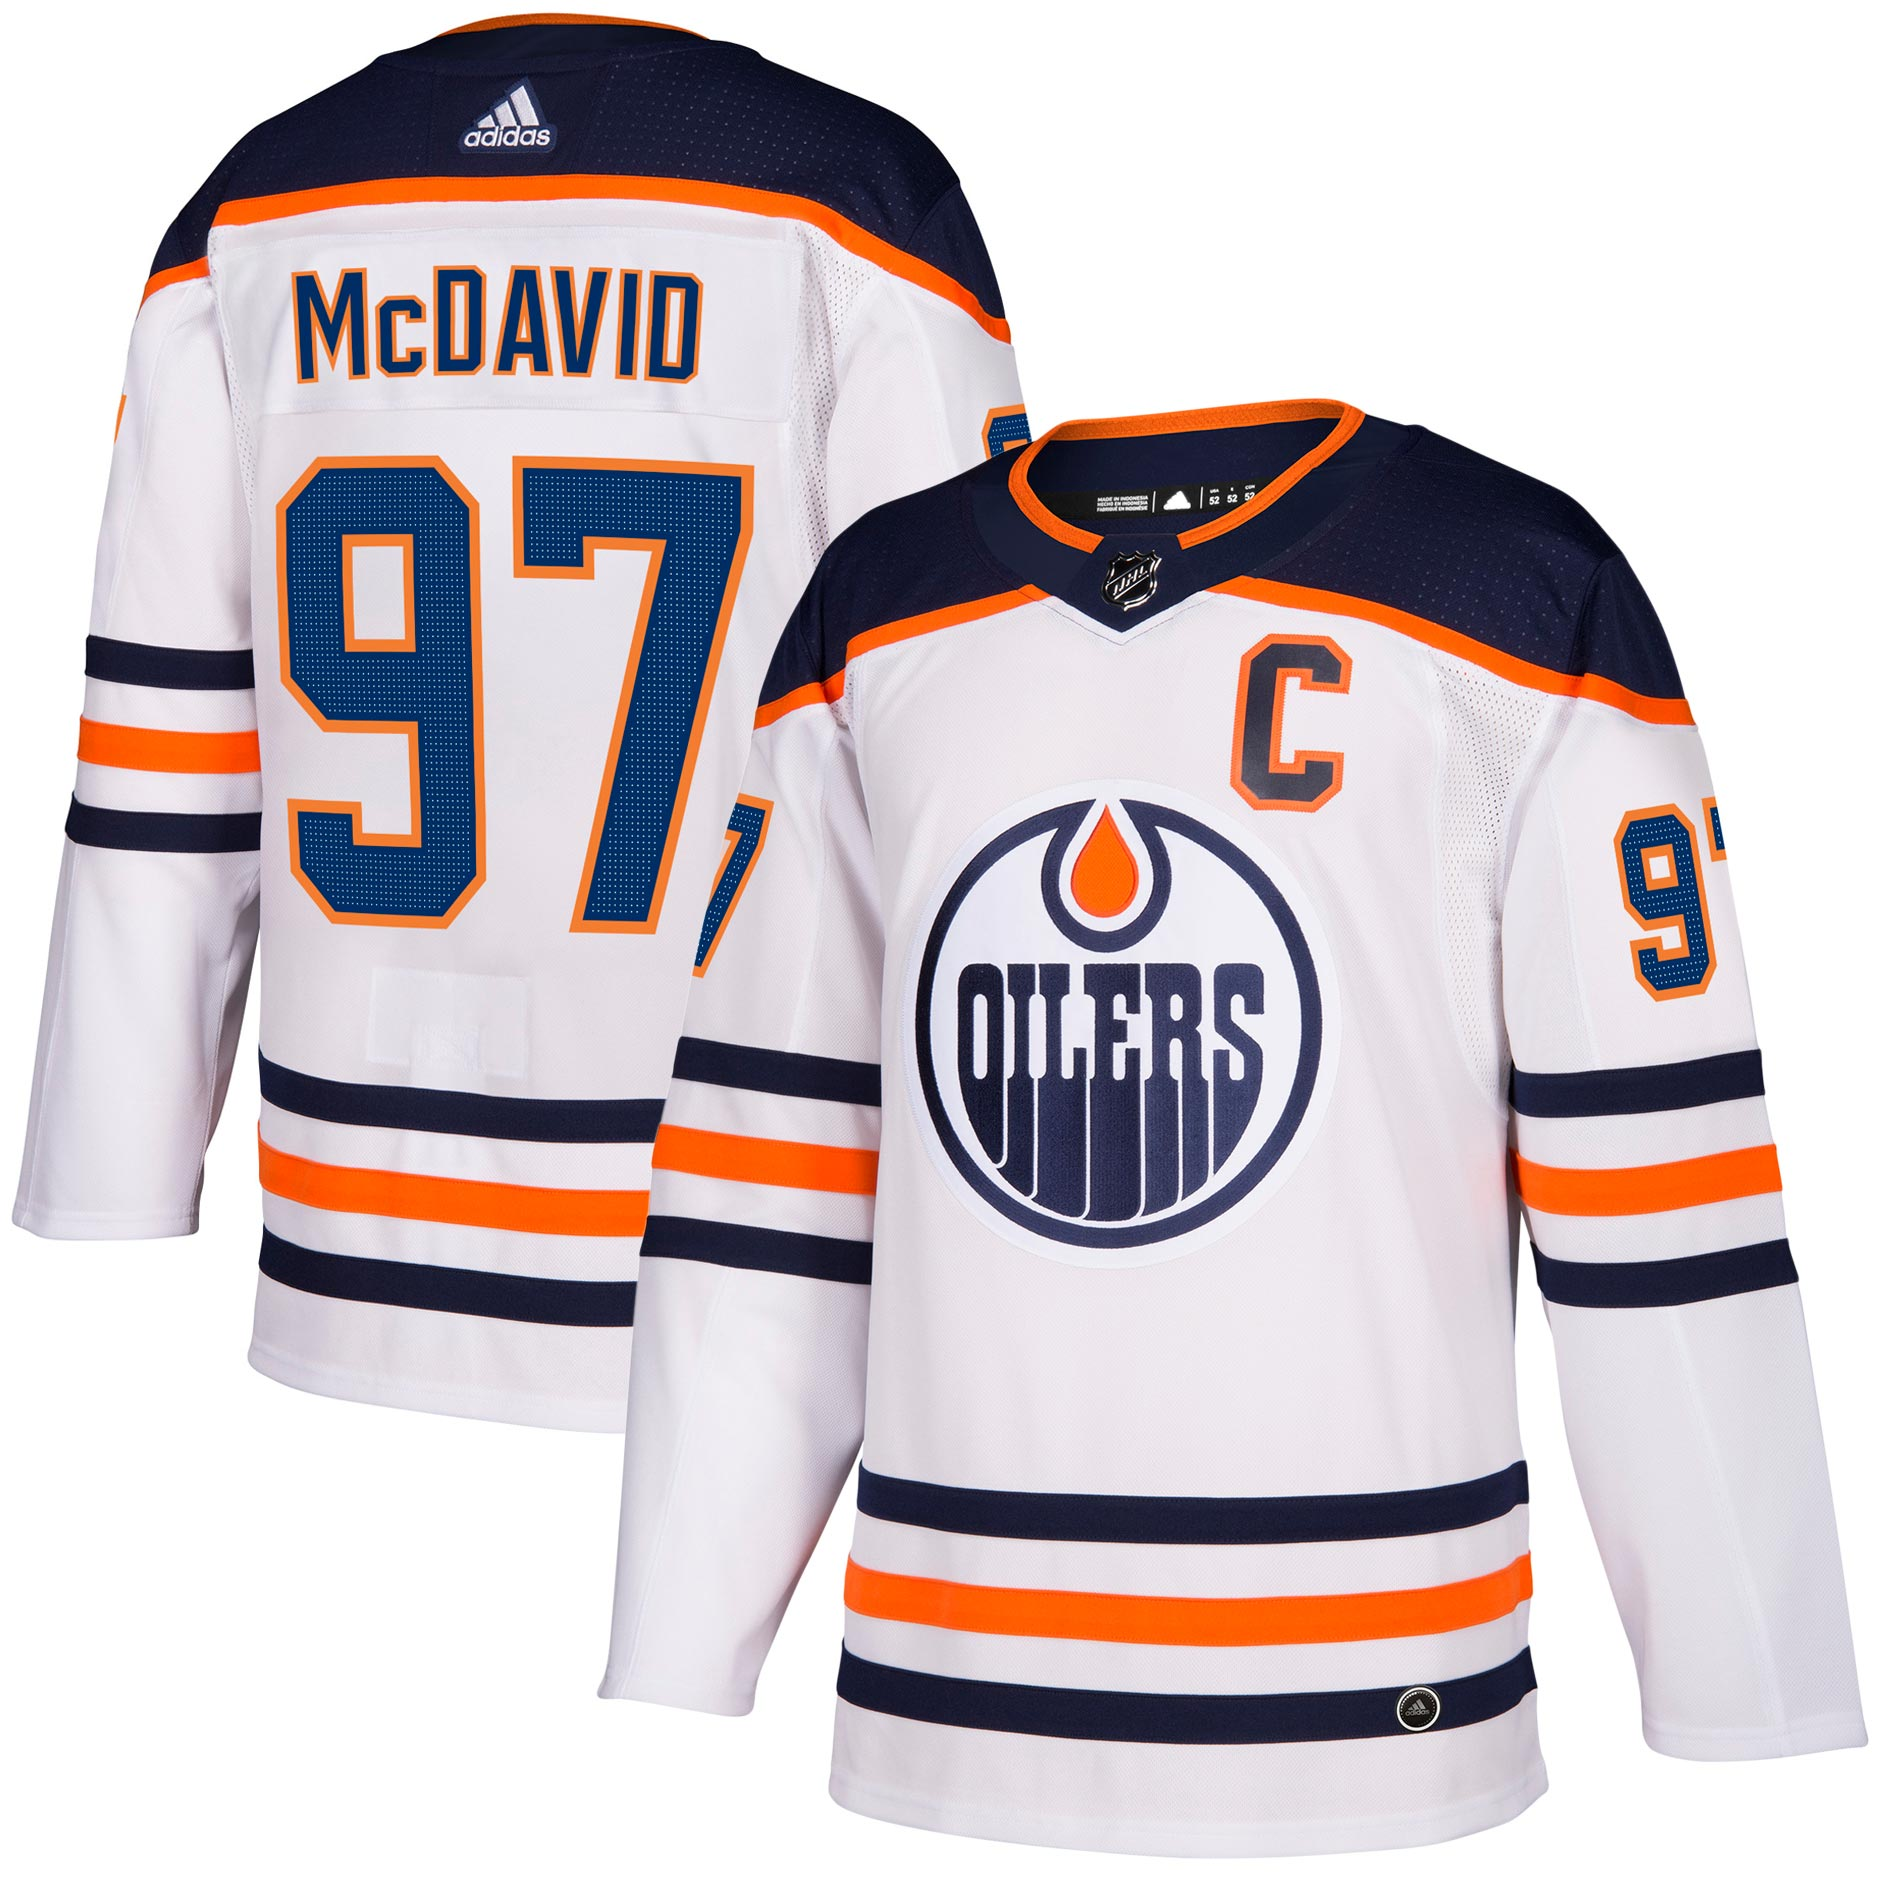 Connor McDavid Edmonton Oilers adidas NHL Authentic Pro Road Jersey -  Premade a980206a988